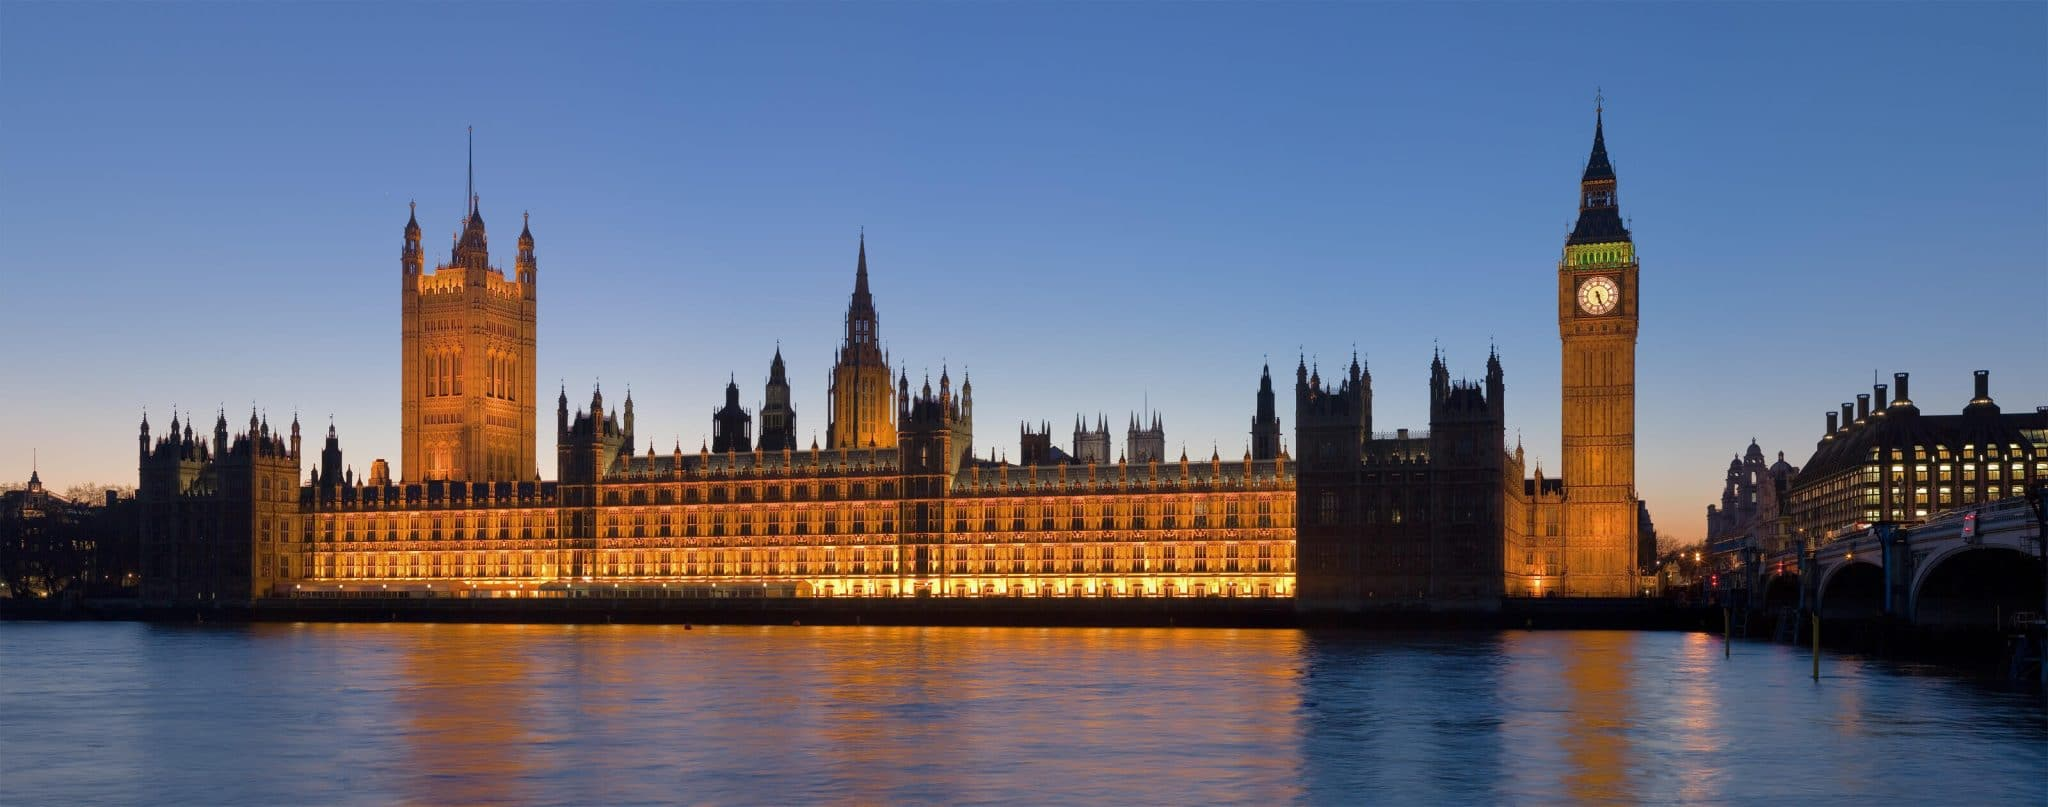 Houses of Parliament (1)